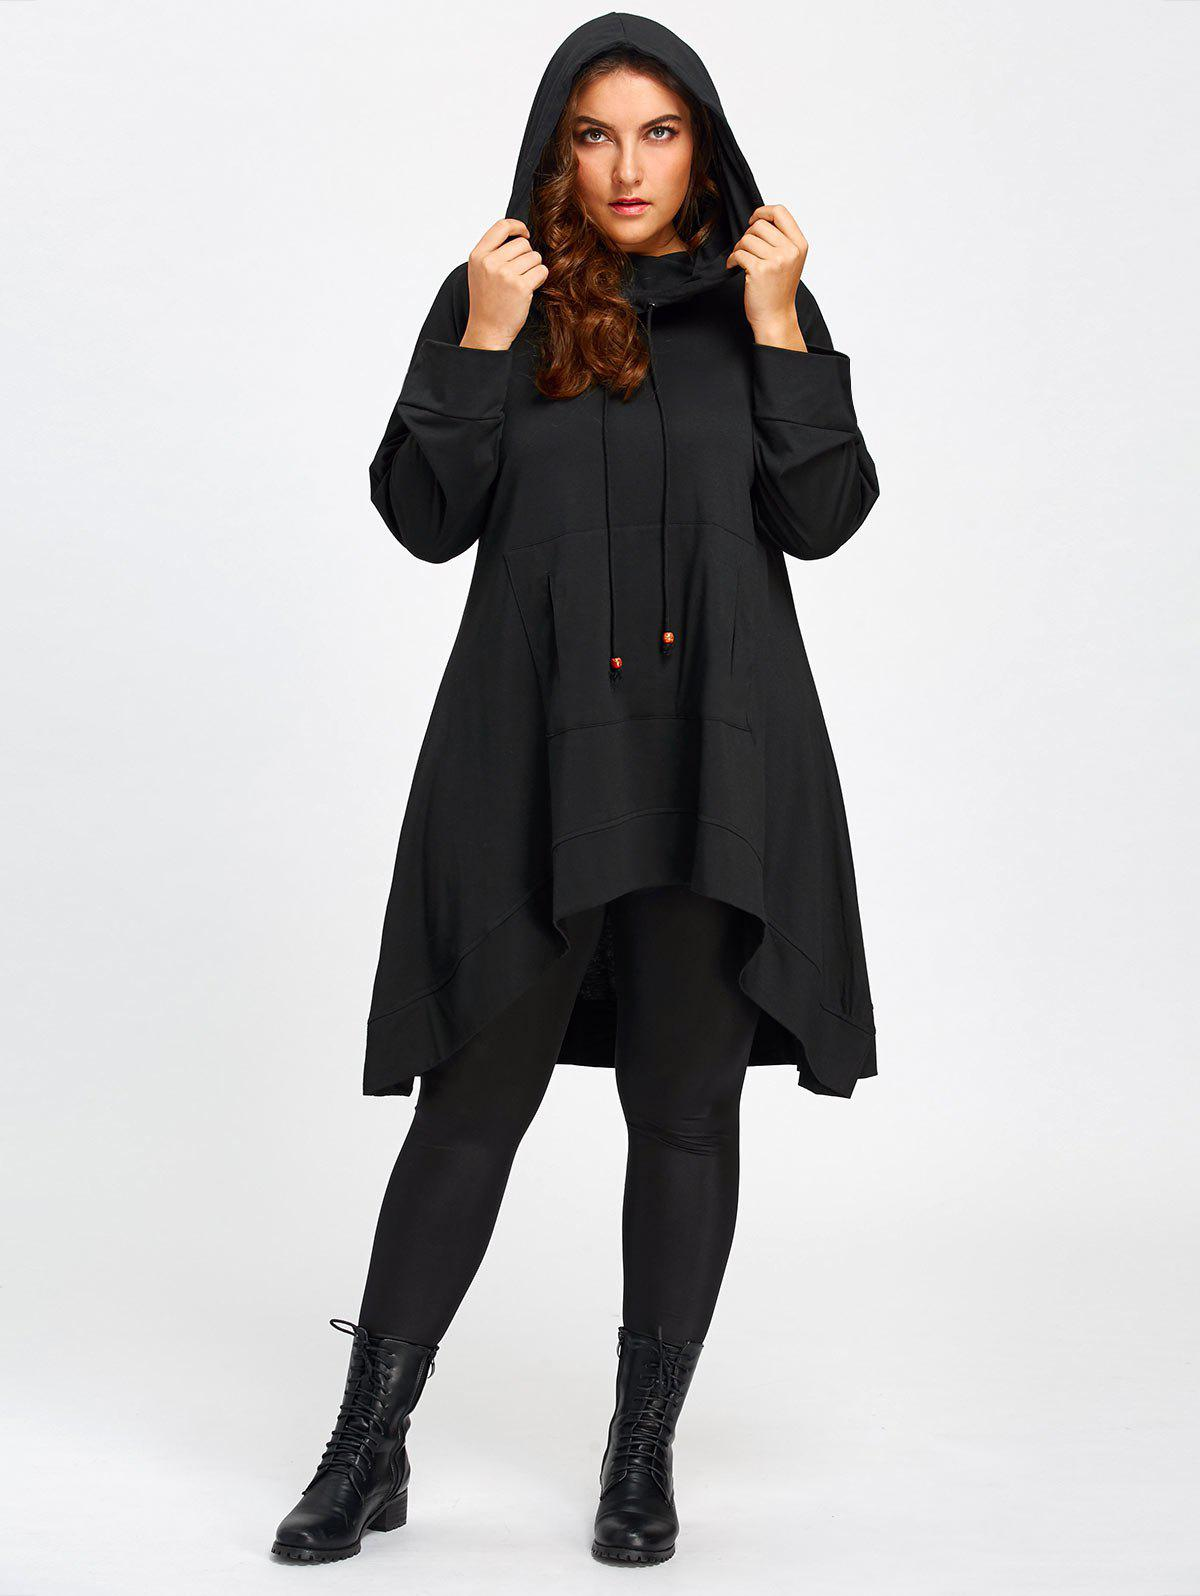 Heaps Collar Plus Size High Low Long HoodieWOMEN<br><br>Size: 2XL; Color: BLACK; Material: Polyester; Shirt Length: Long; Sleeve Length: Full; Style: Casual; Pattern Style: Solid; Embellishment: Front Pocket; Season: Fall,Spring; Weight: 0.6100kg; Package Contents: 1 x Hoodie;